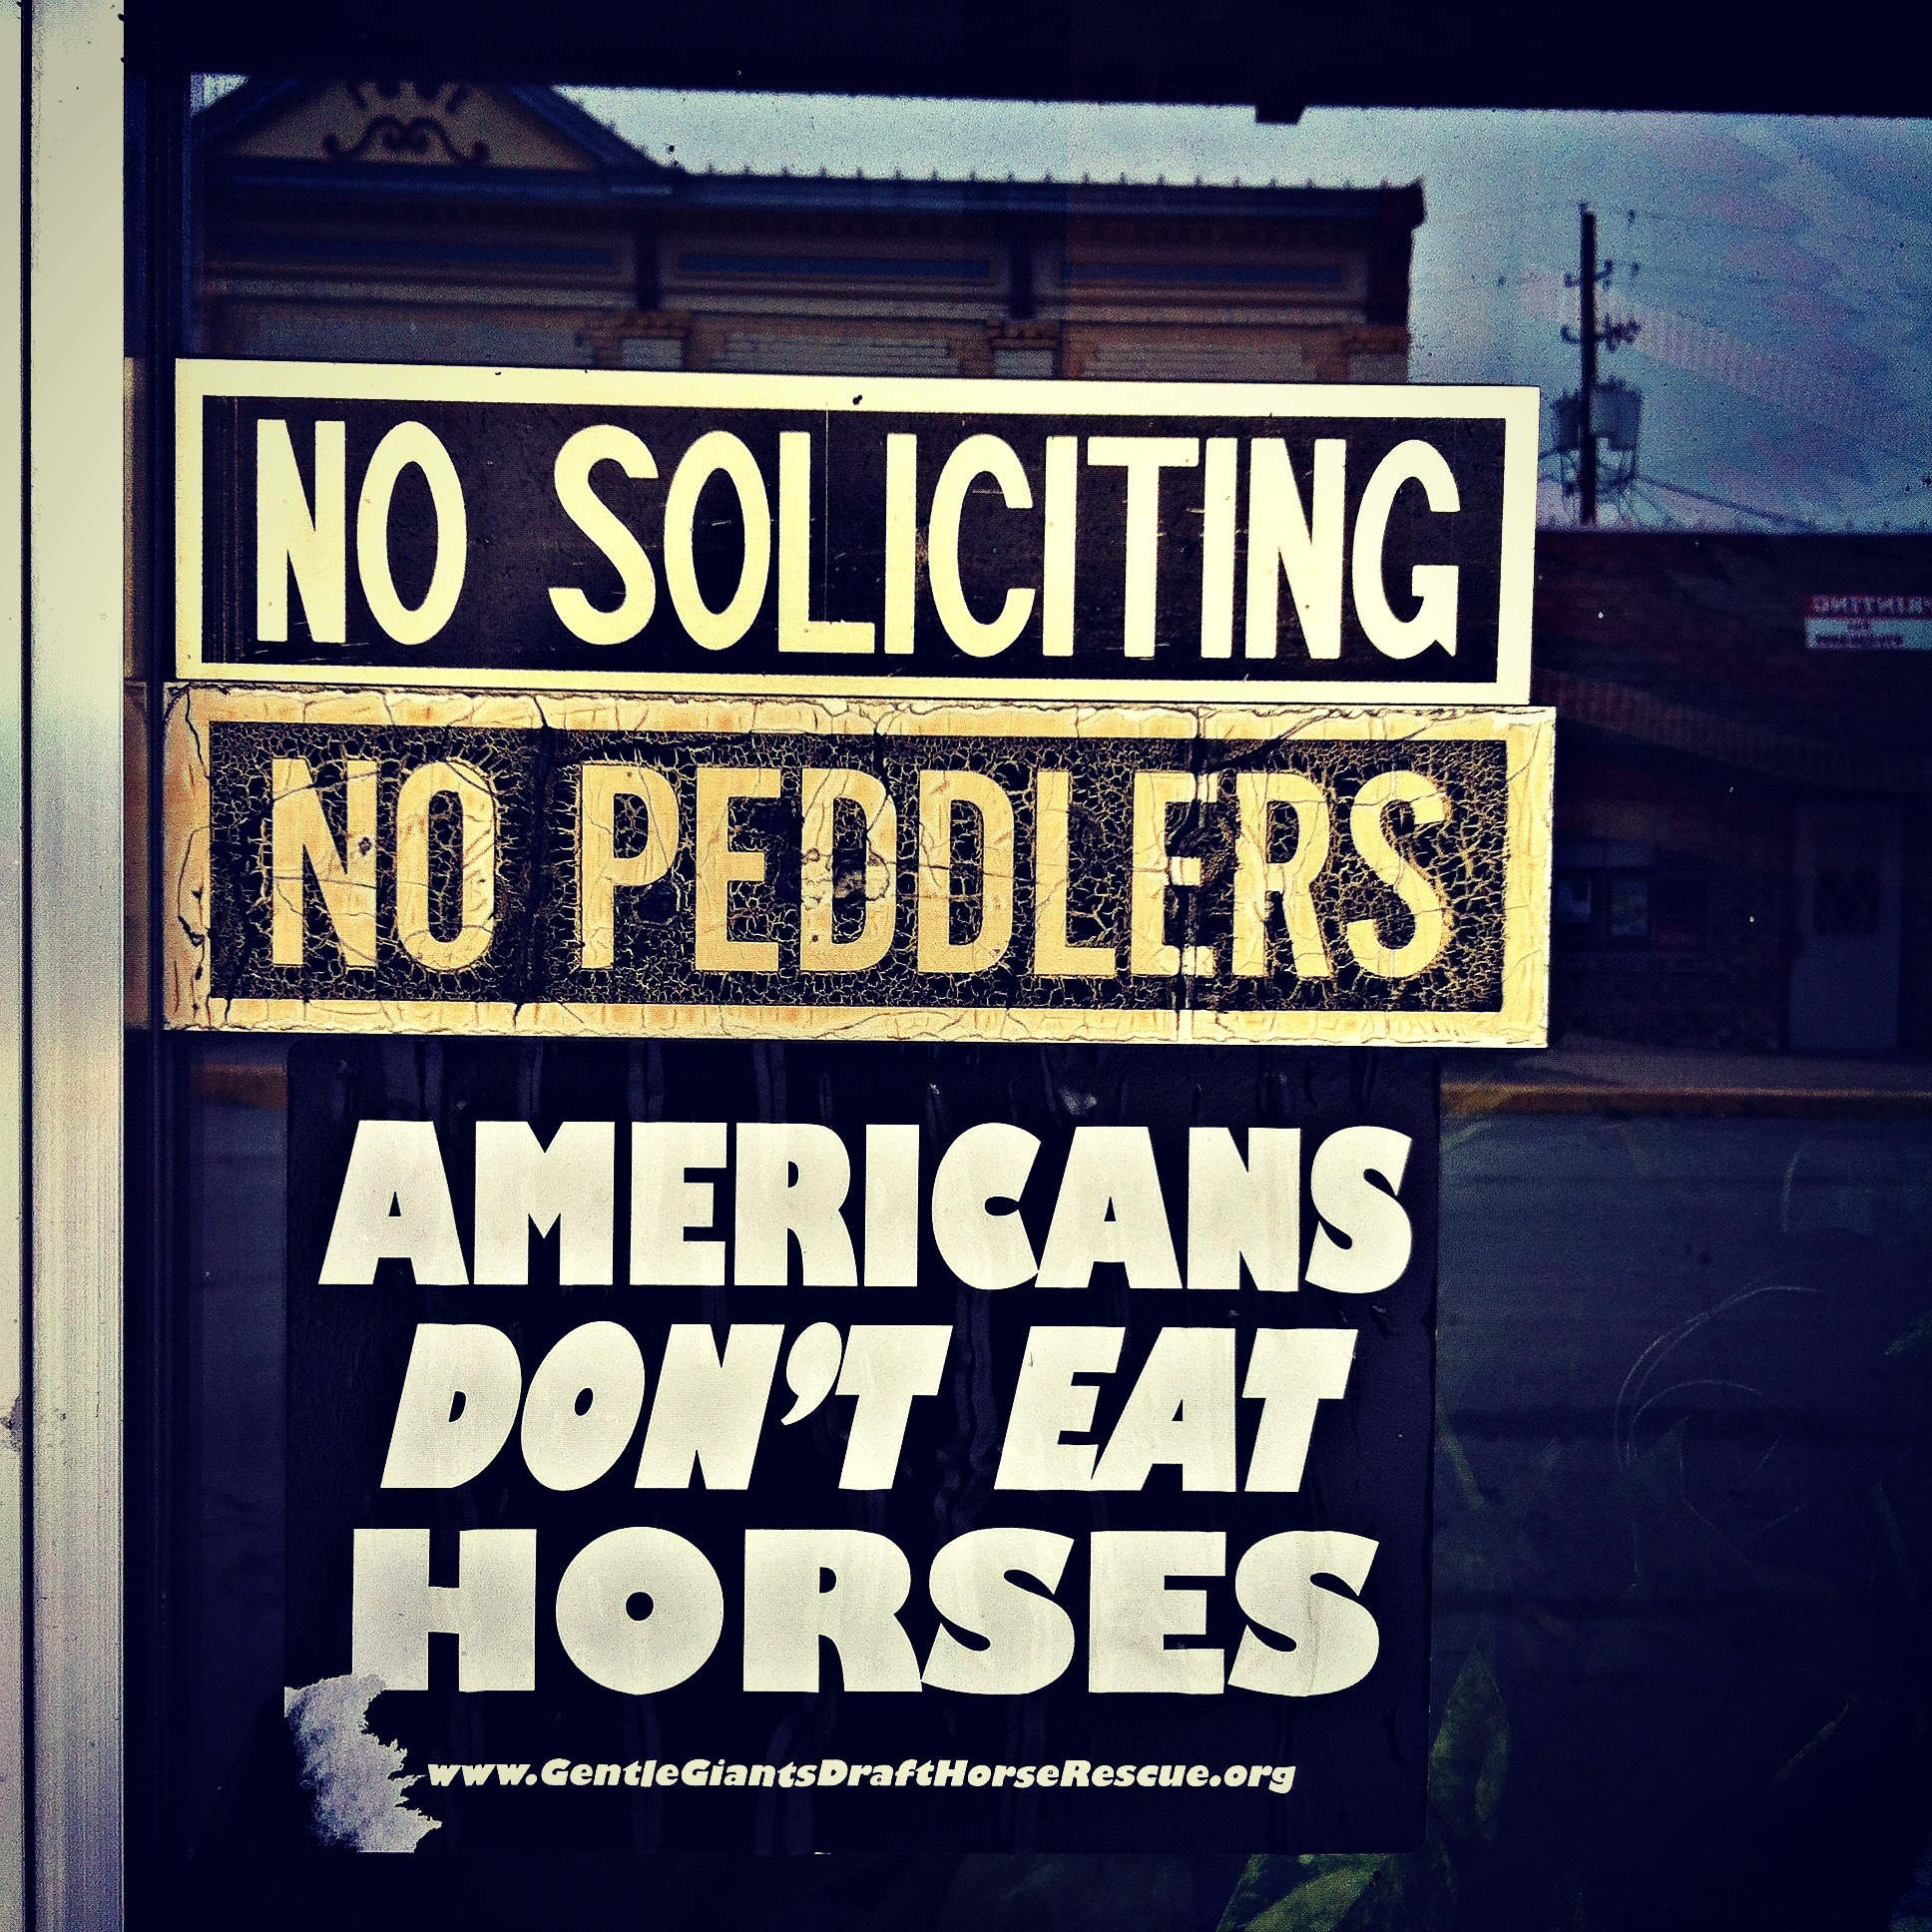 They don't eat horses, do they?